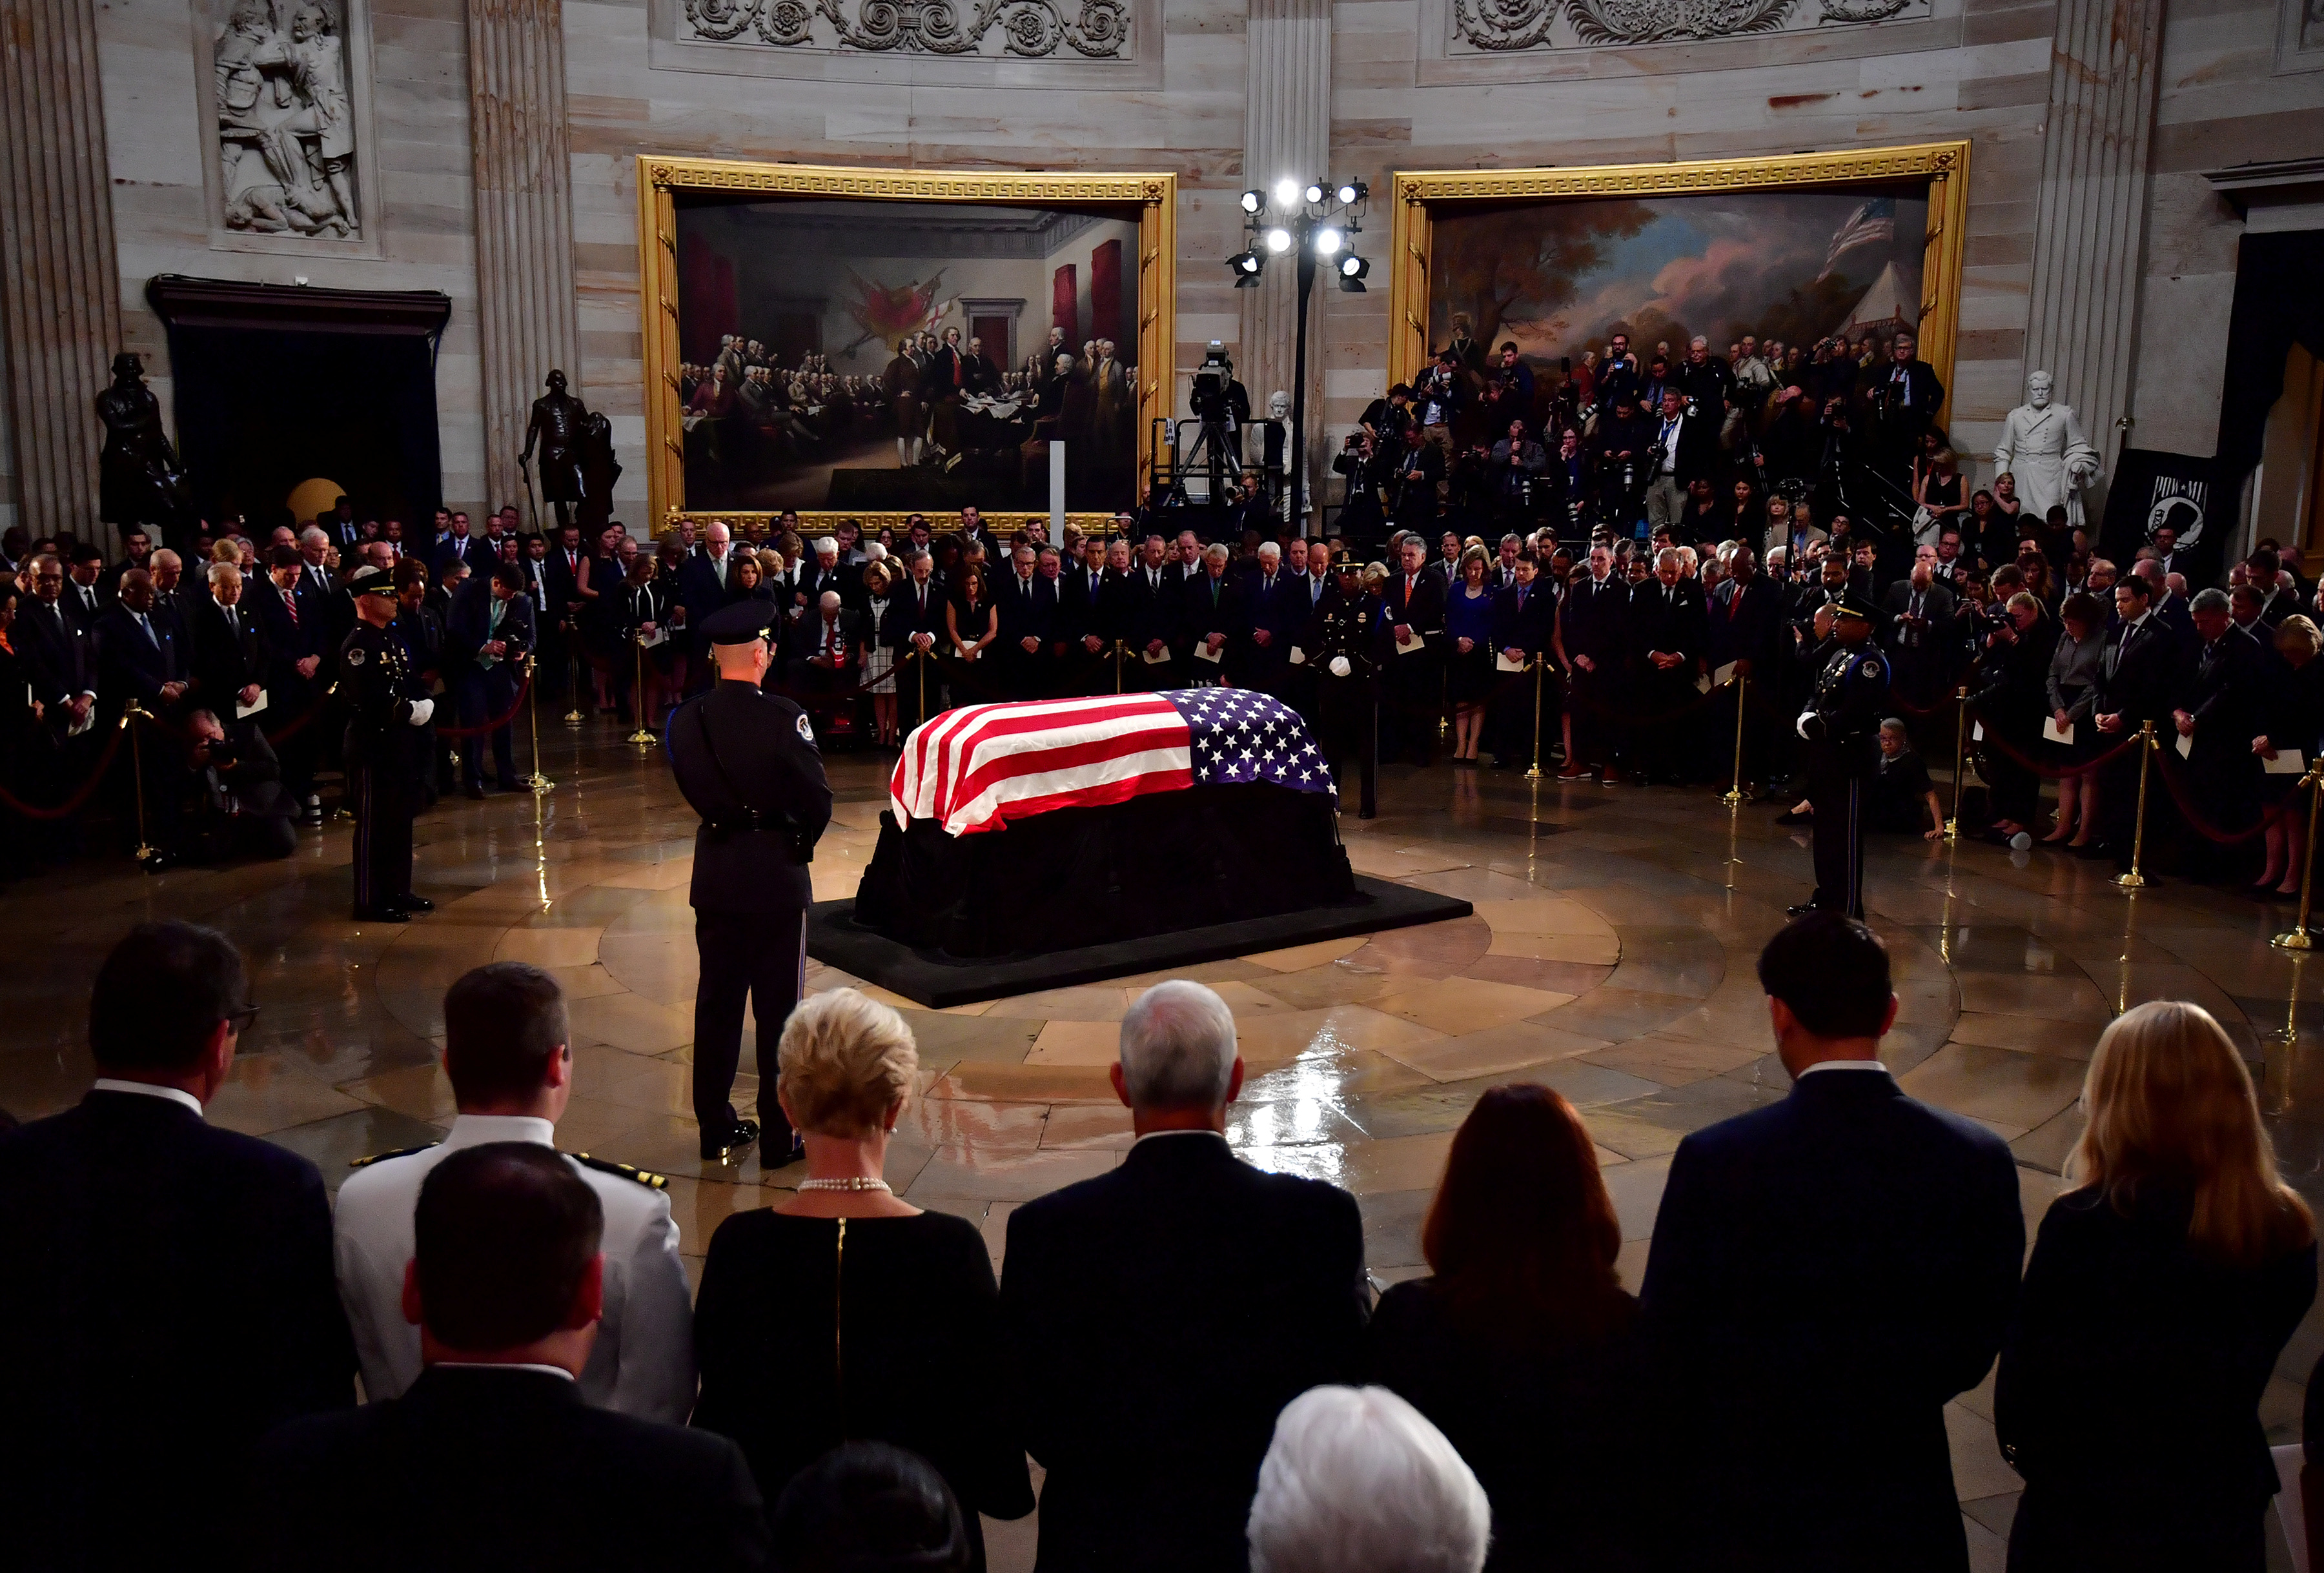 Mourners surround the casket of former Senator John McCain in the Capitol Rotunda where he will lie in state at the U.S. Capitol, in Washington, D.C. on Friday, August 31, 2018. Kevin Dietsch/POOL Via REUTERS